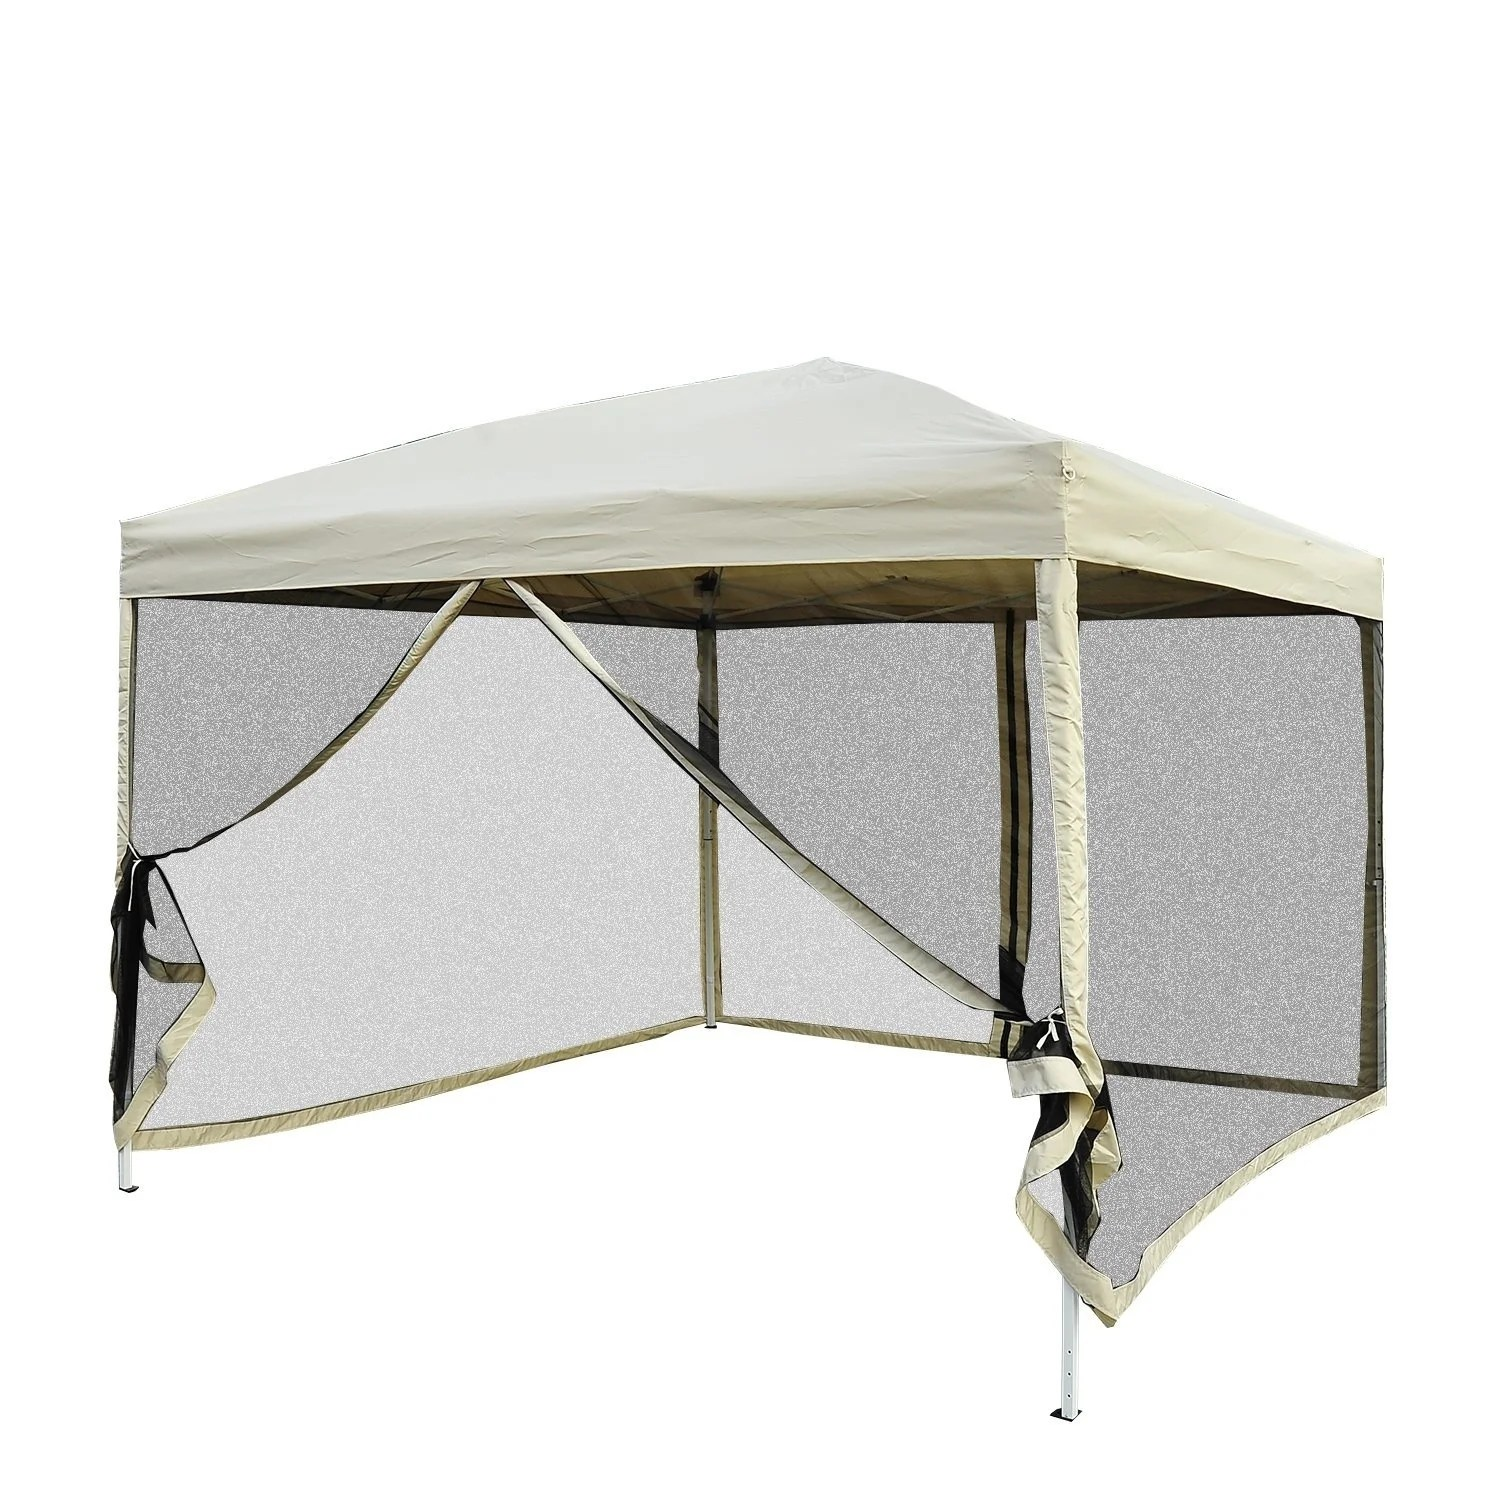 Pop Up Canopy Outsunny 10 X 10 Easy Pop Up Canopy Tent With Mesh Side Walls Tan